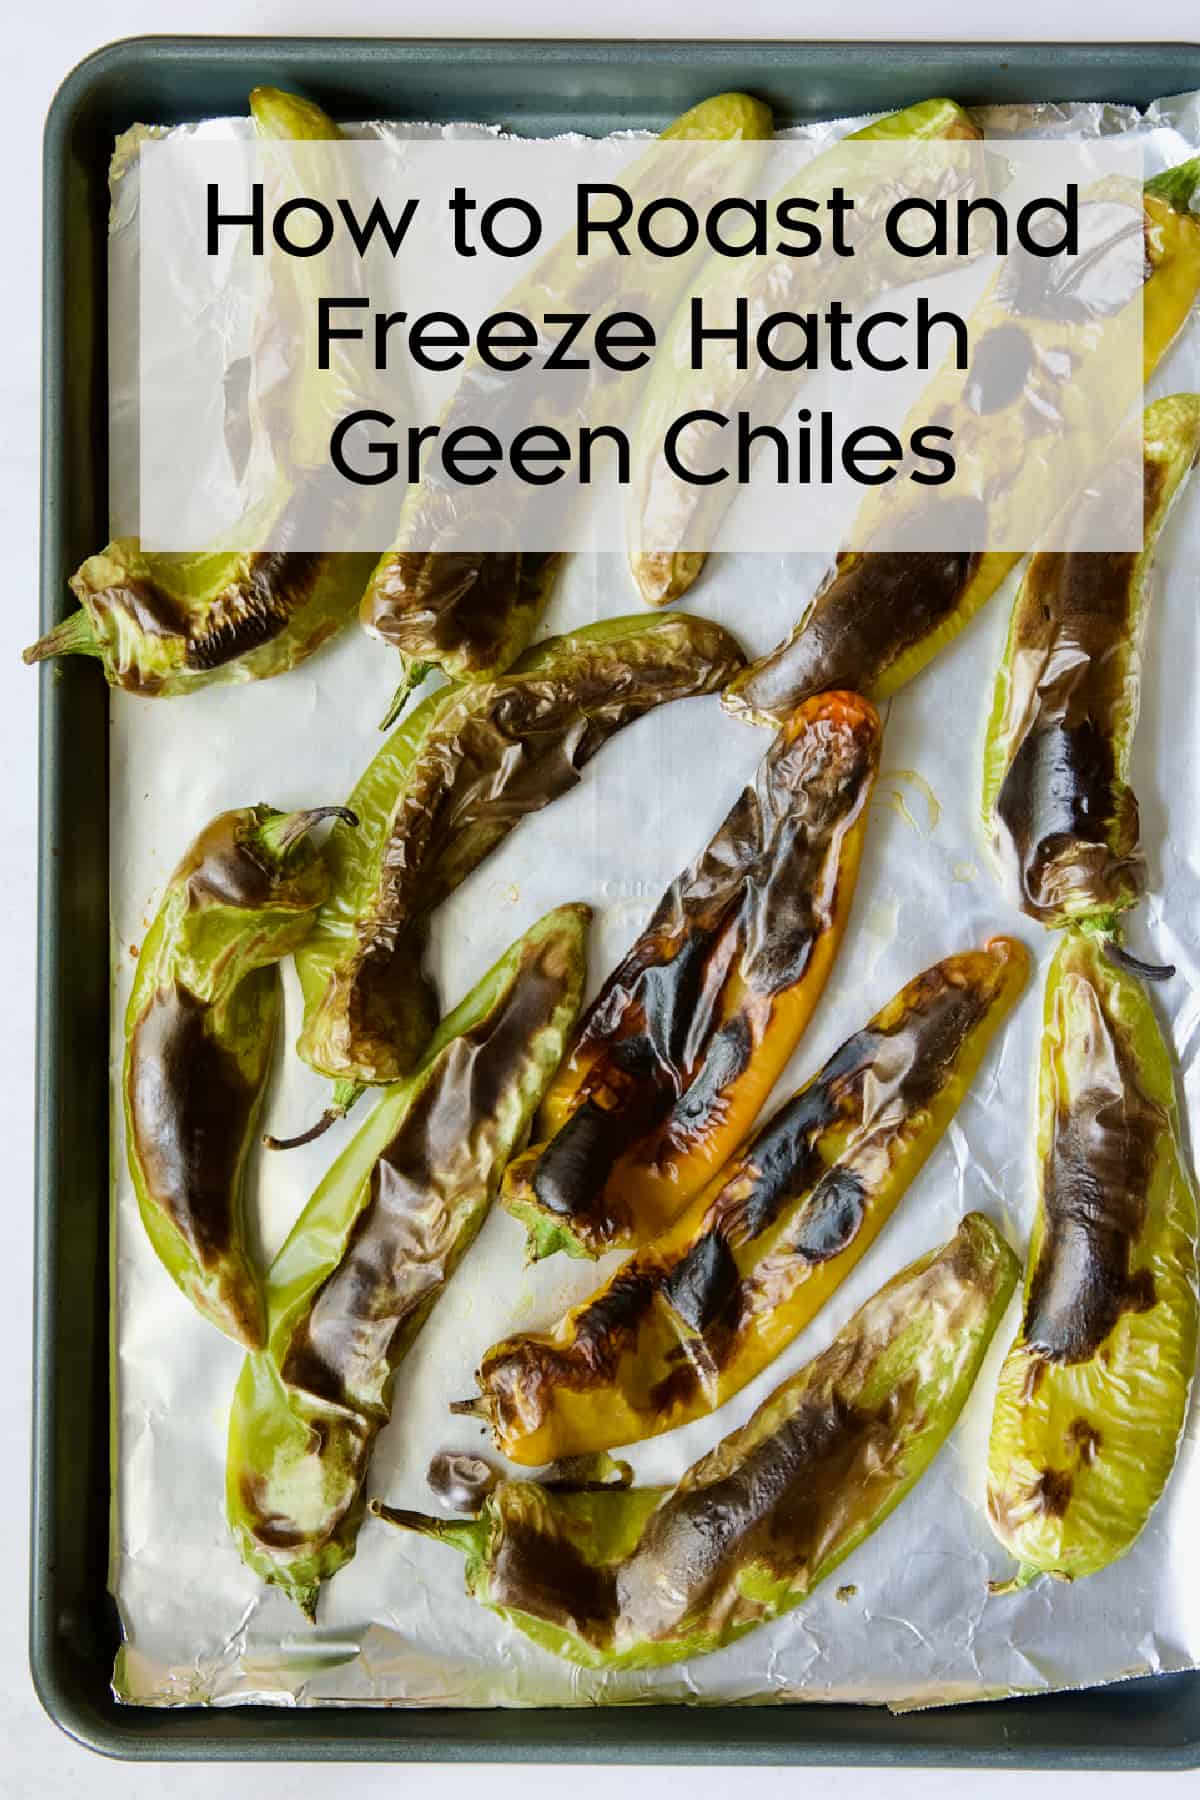 Hatch green chiles on aluminum-foil lined sheet pan with title of post.